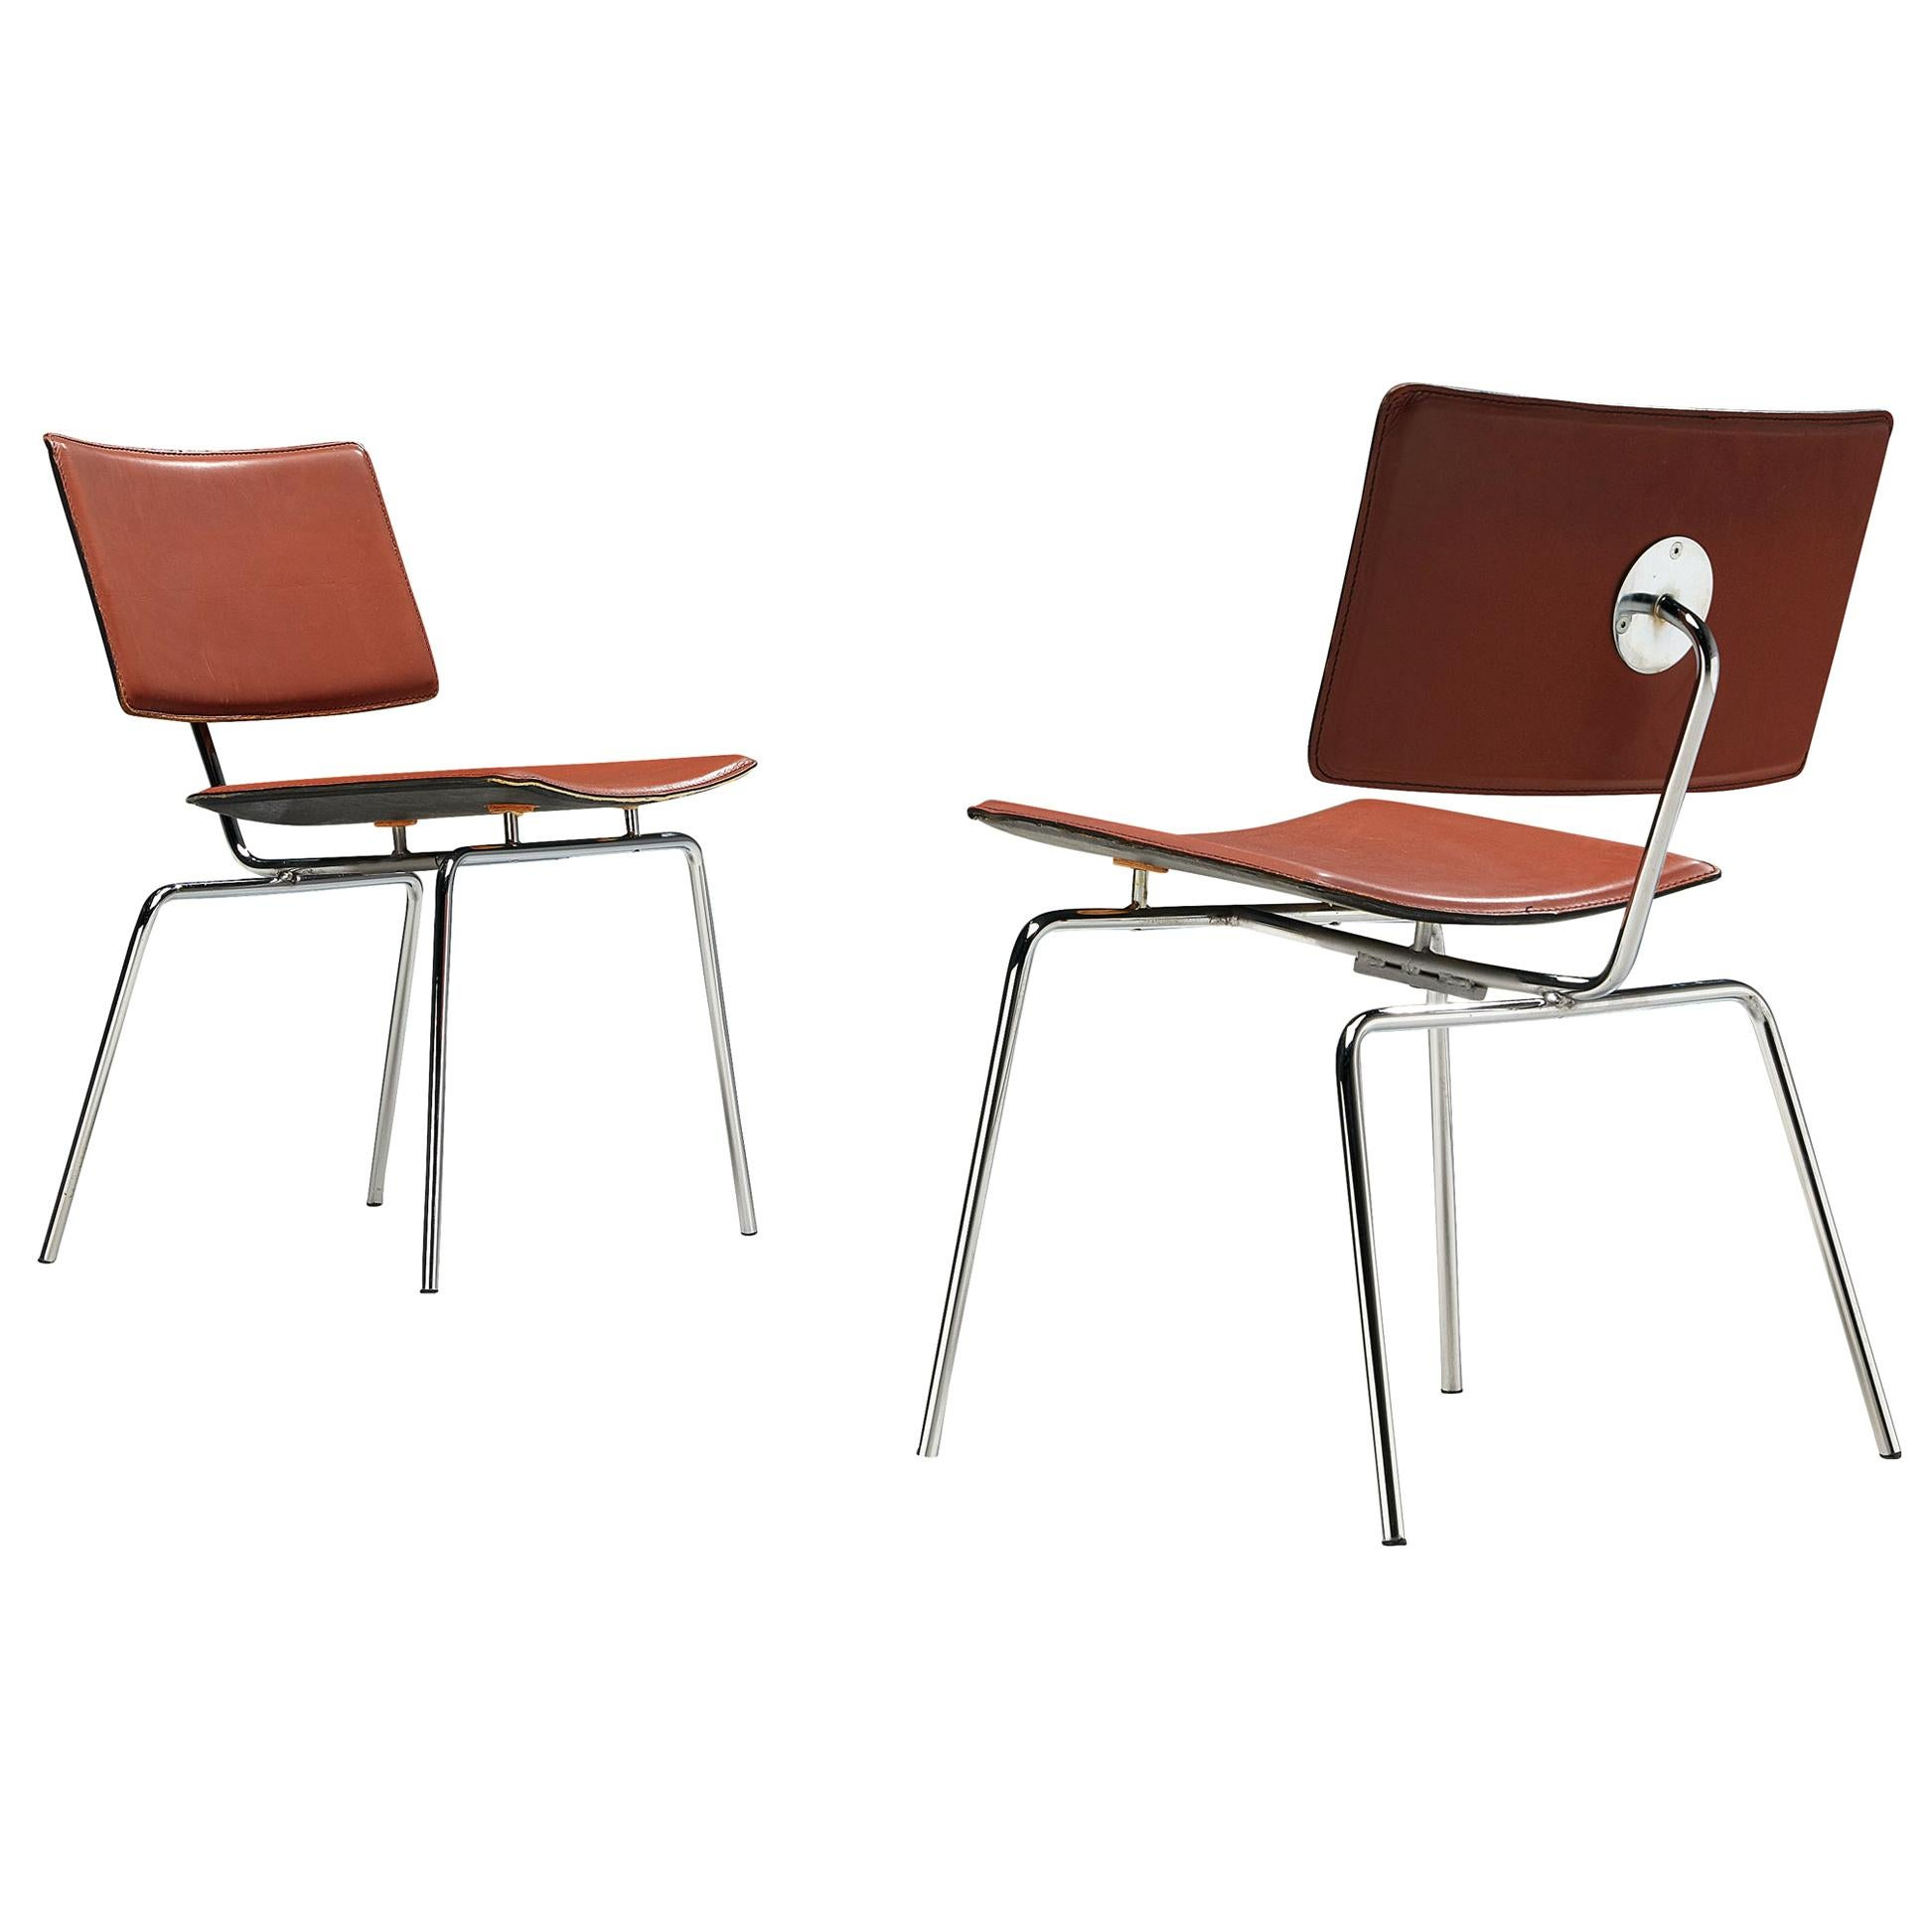 Pair of Dining Chairs in Chrome and Leather